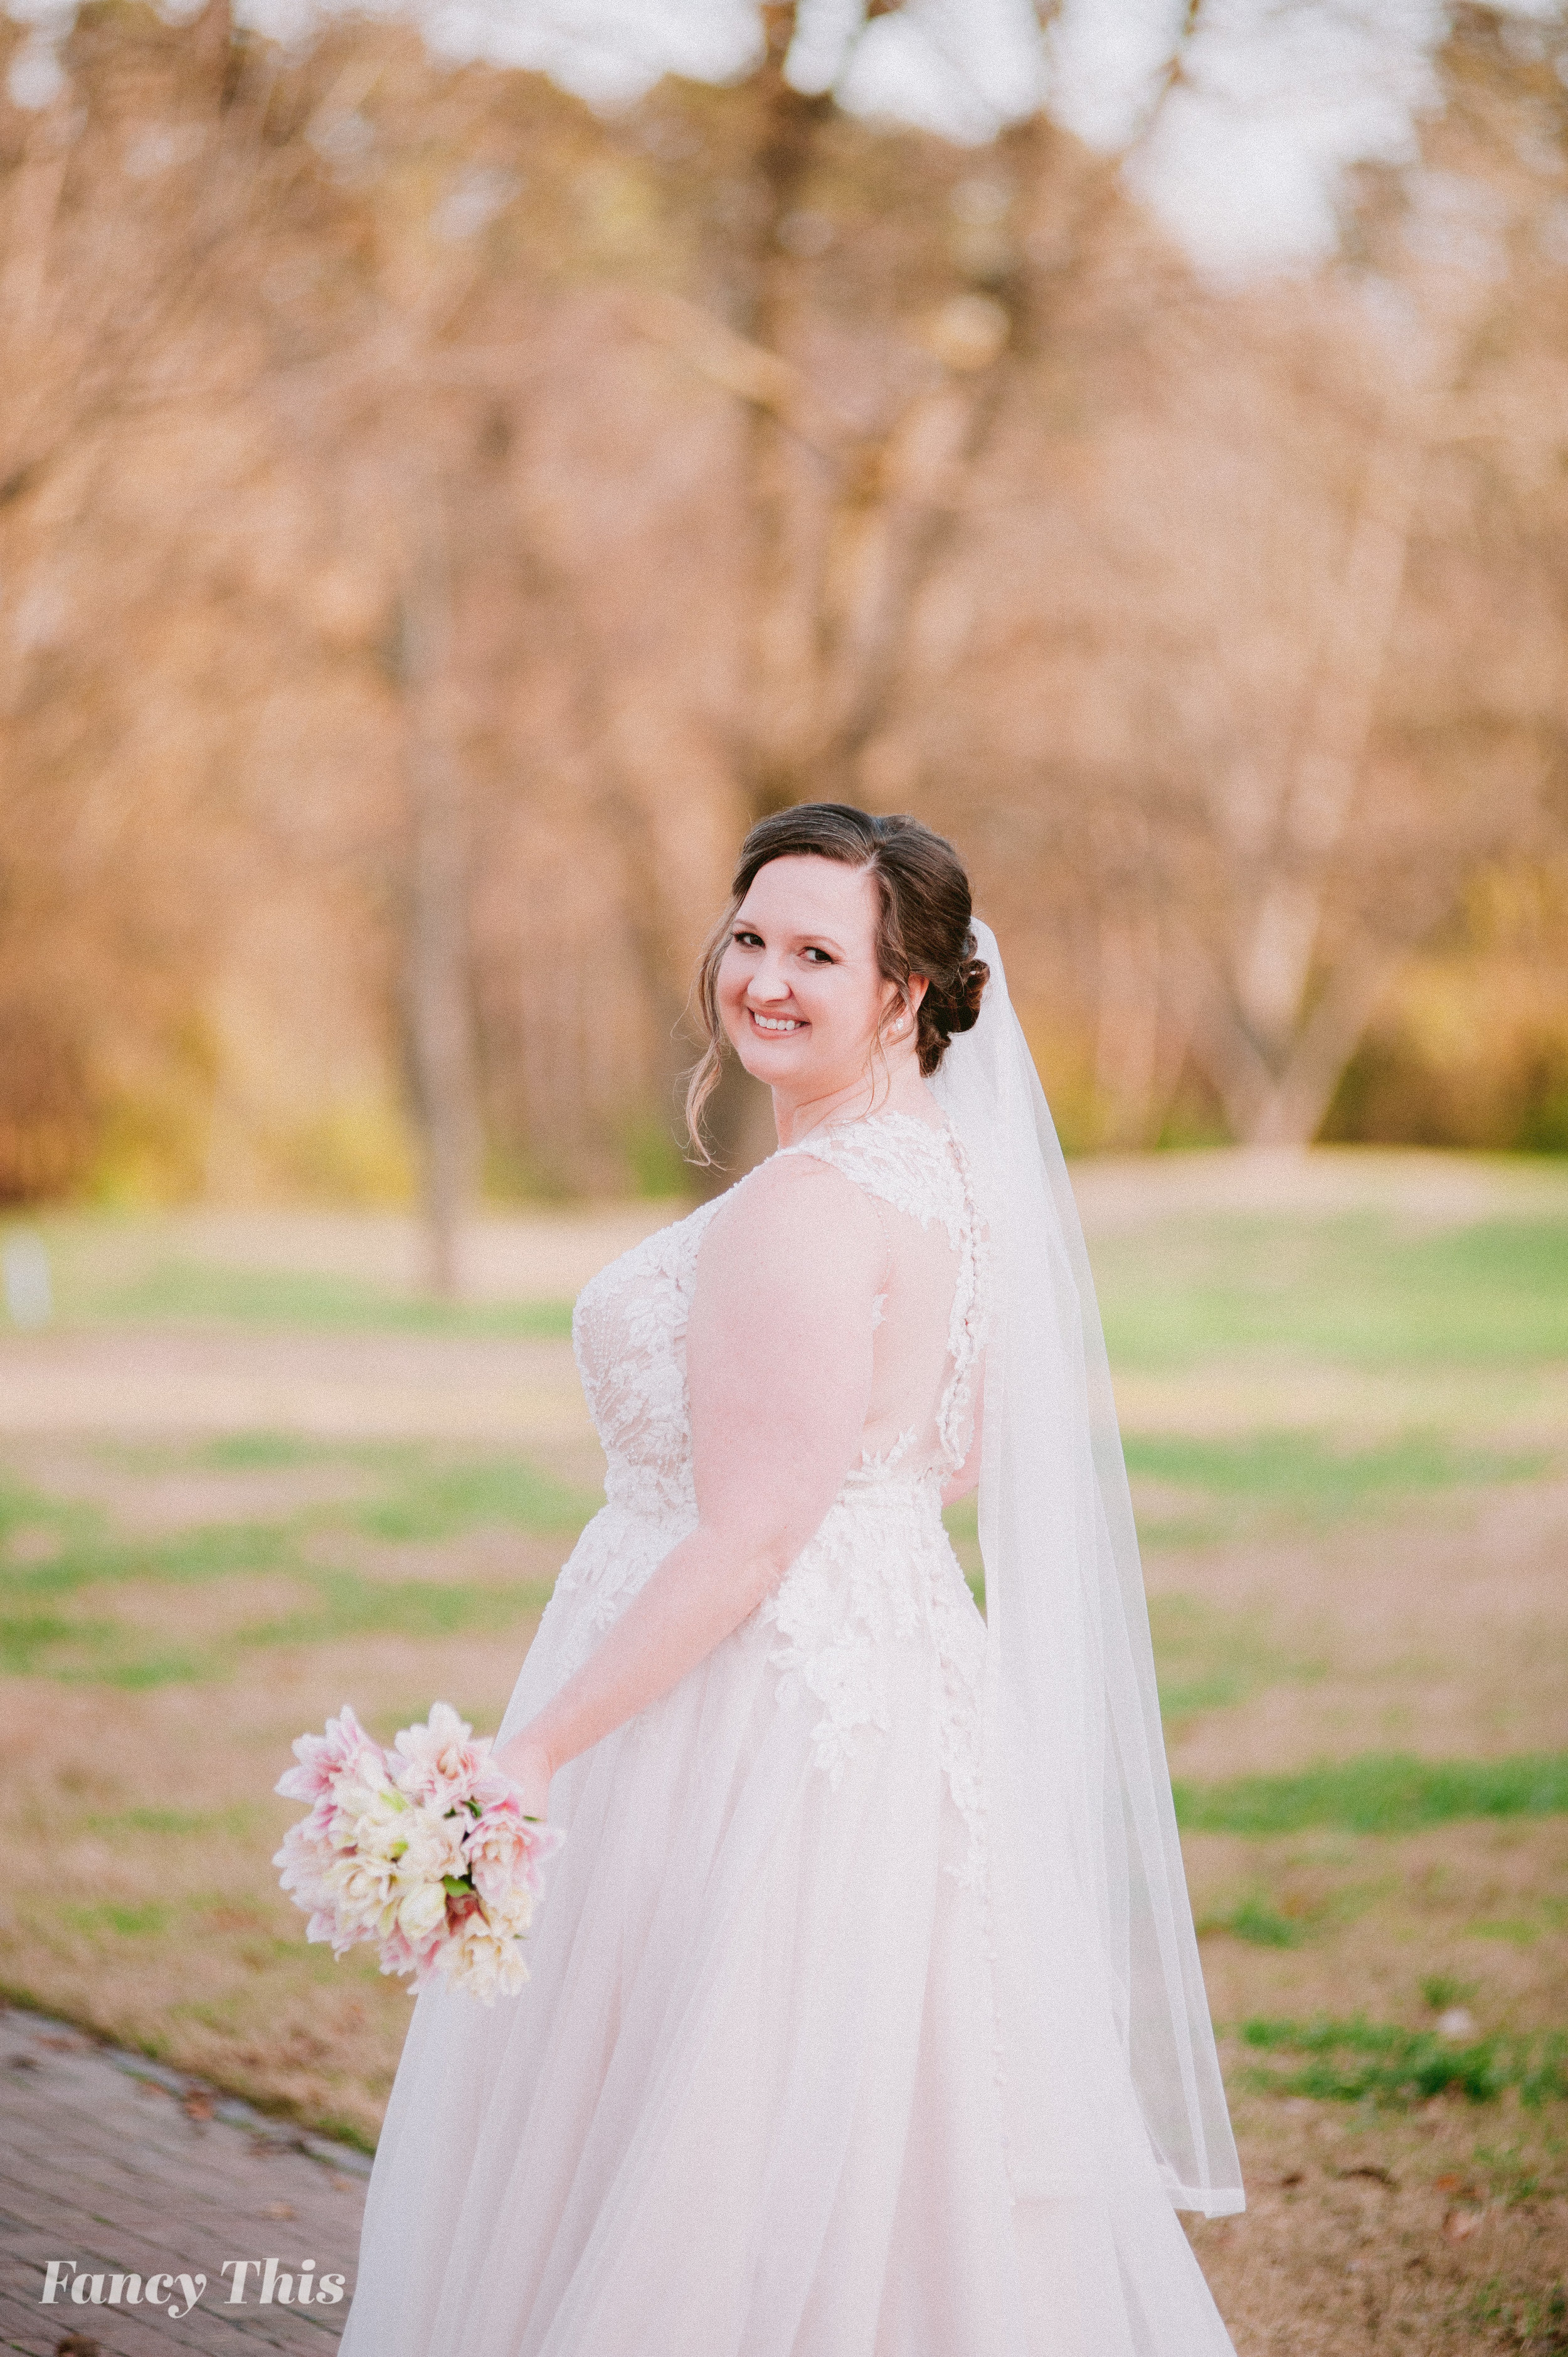 stacyrevels_raleighbridals_fancythis-20.jpg